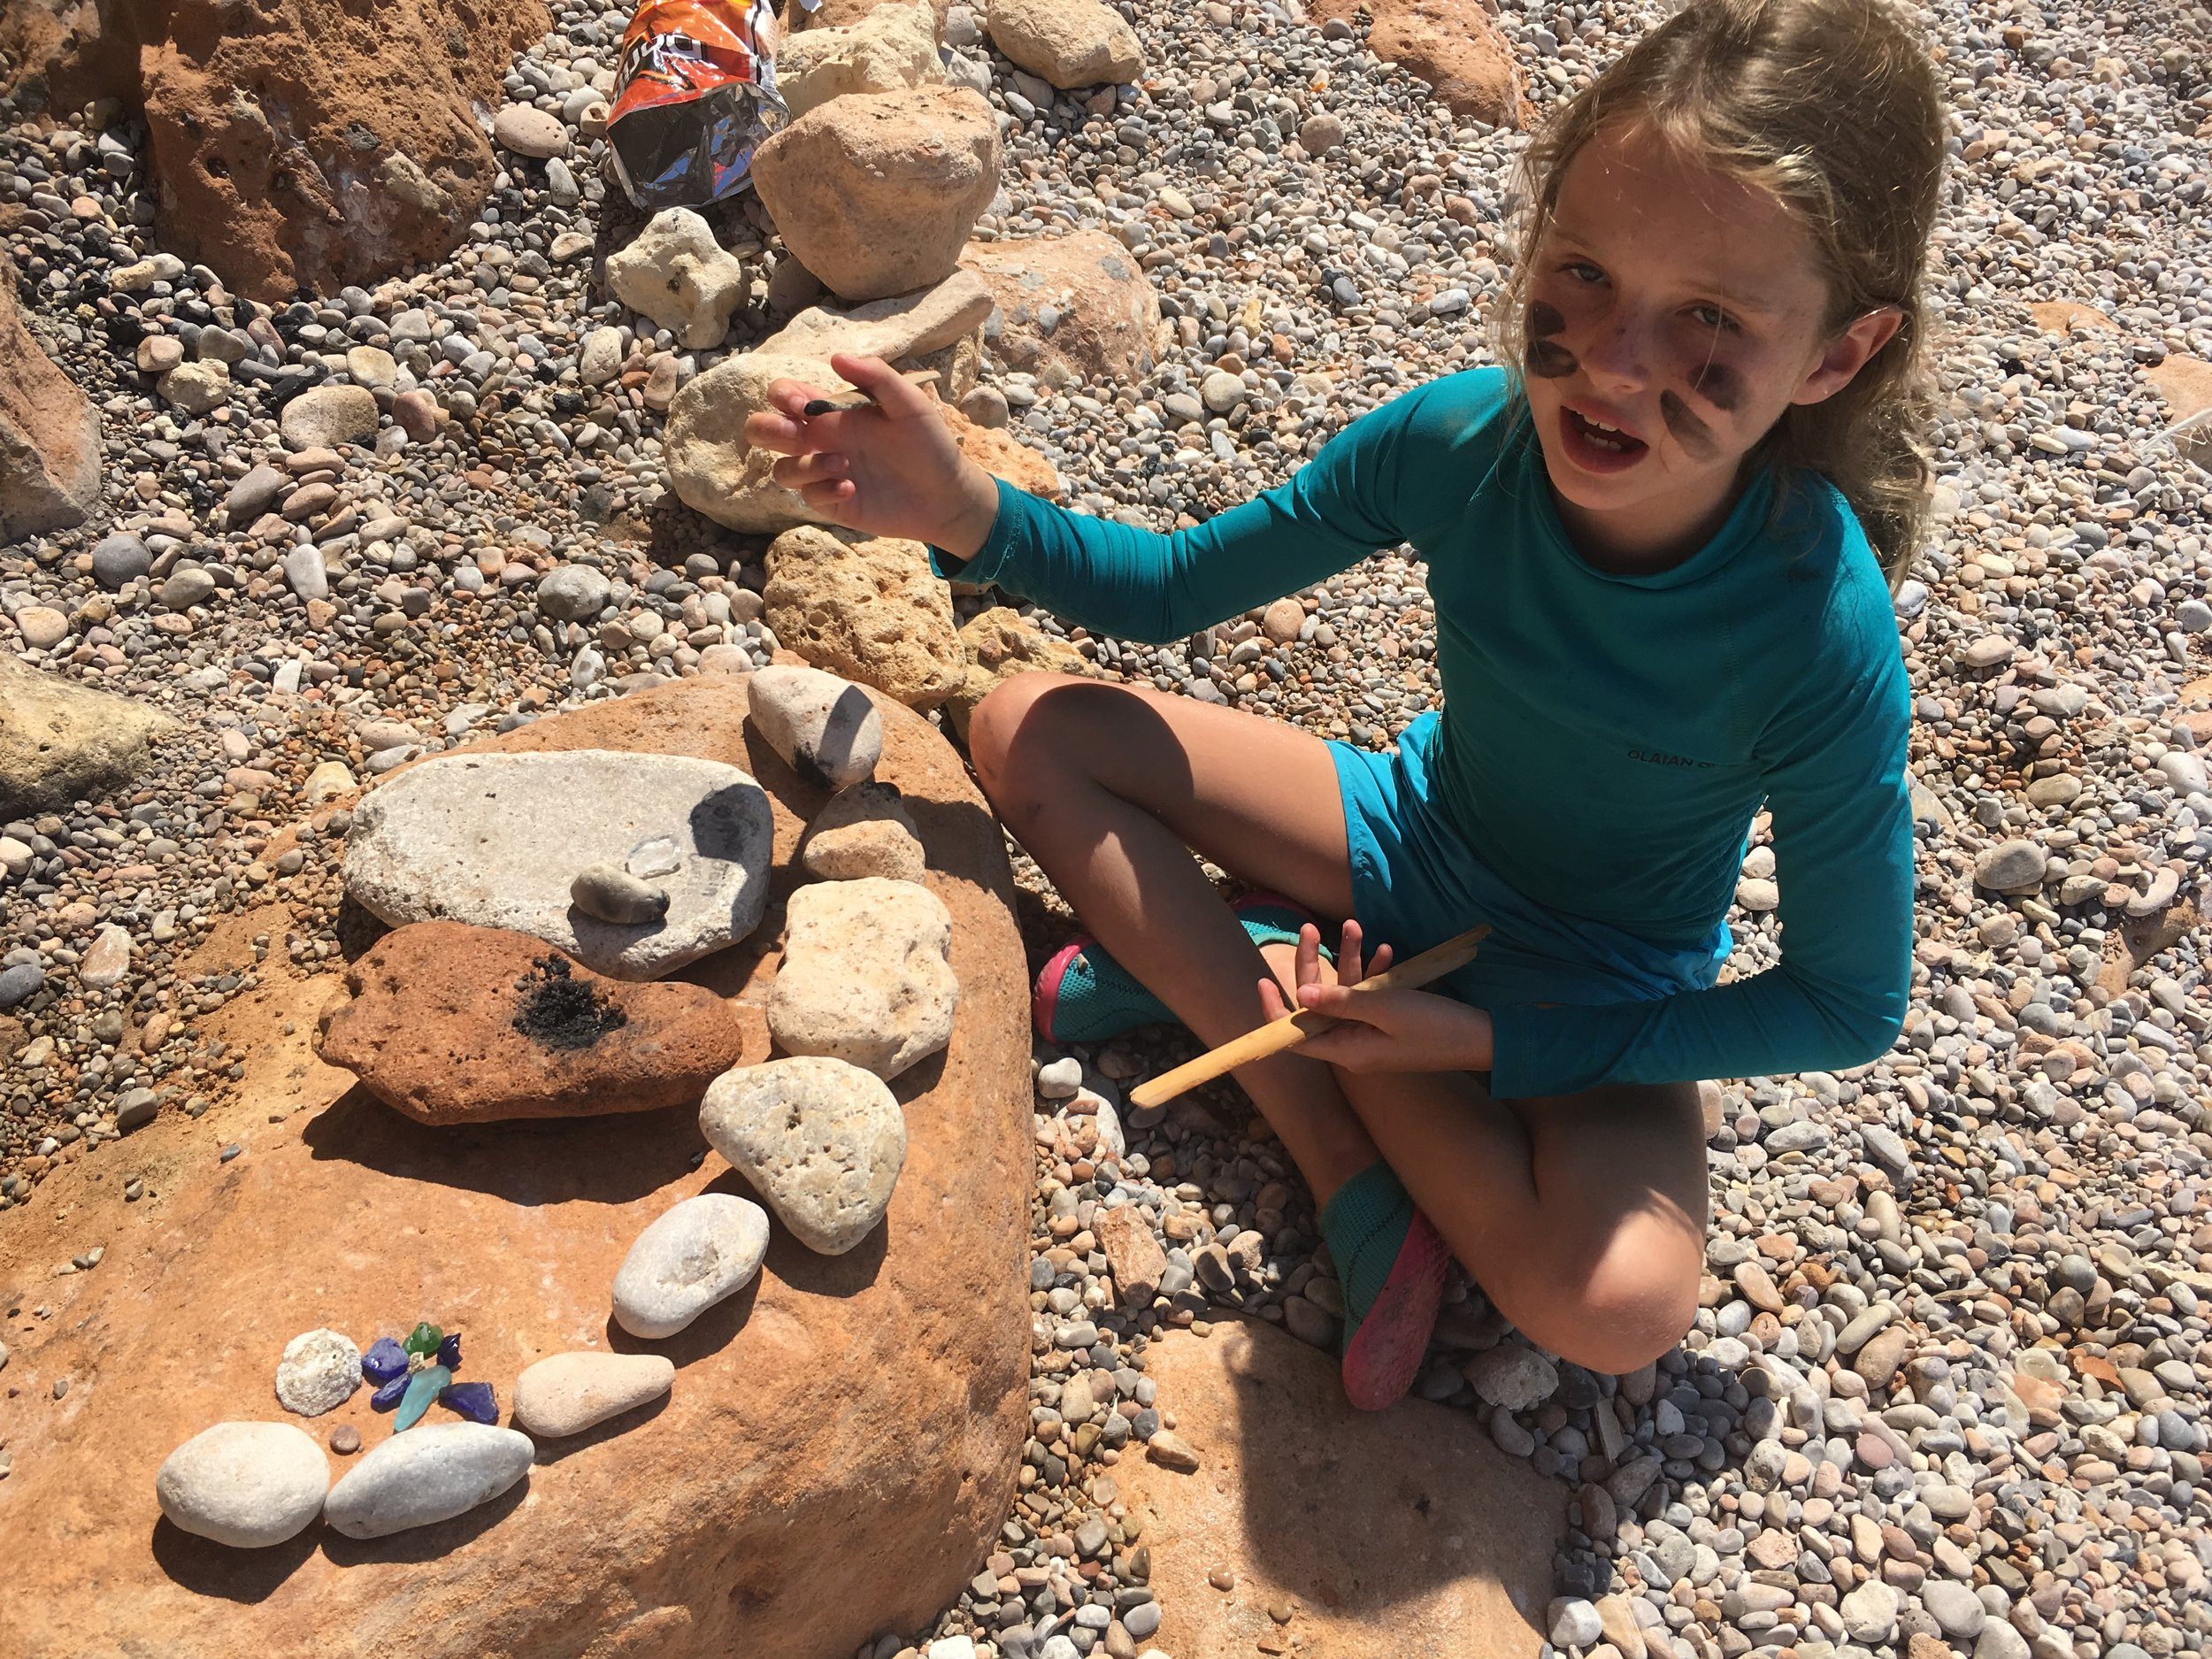 Here Izzy (and Victoria out of site of the photo) found a piece of burnt wood and made some type of potion along with finding colorful rocks. They found this spot on their own within view of our tiny camp on the beach. We encourage kids to explore and be creative with stuff they find on the beach. Still not sure what the story is with the charcoal face paint. It's a somewhat free range experience. (looks like they also manage to swipe a bag of Doritos!)